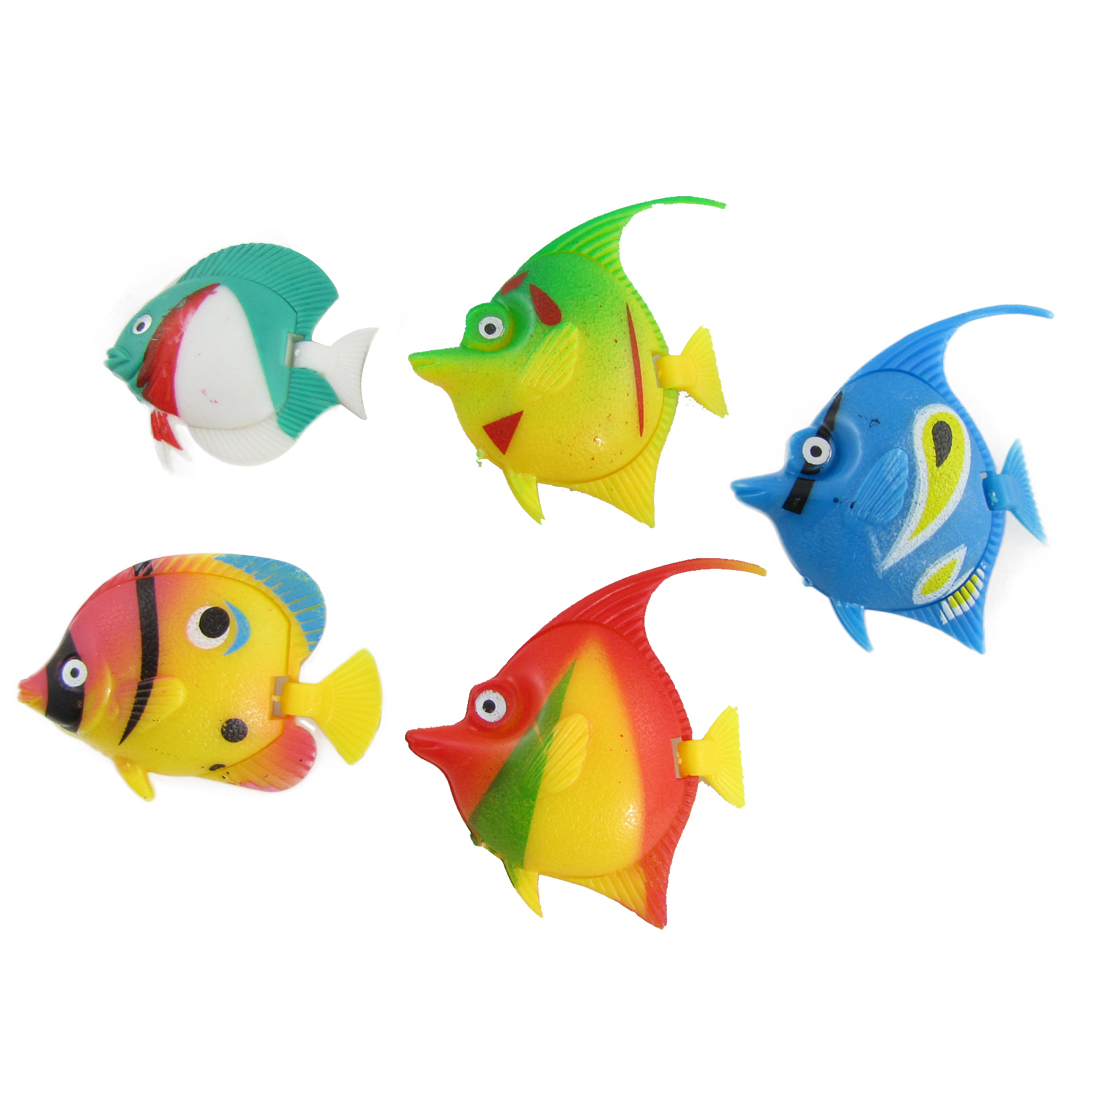 5 Pcs Plastic Floating Tropical Fishes Ornament for Aquarium